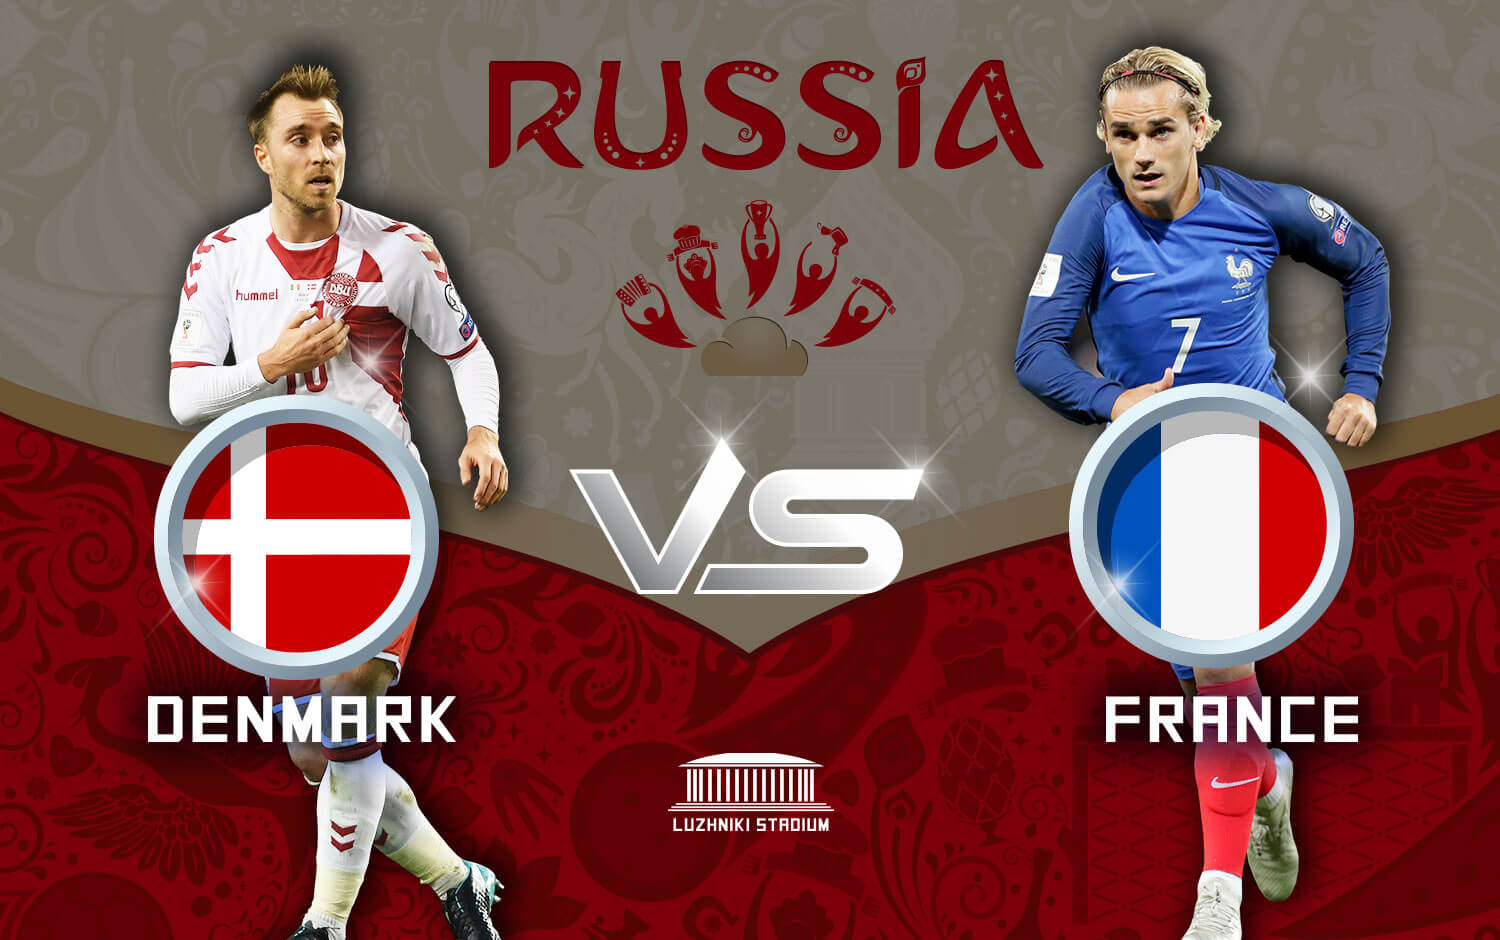 England vs Ireland live stream how to watch today s football sports board football contents   sports boar  sports boar  sports boar